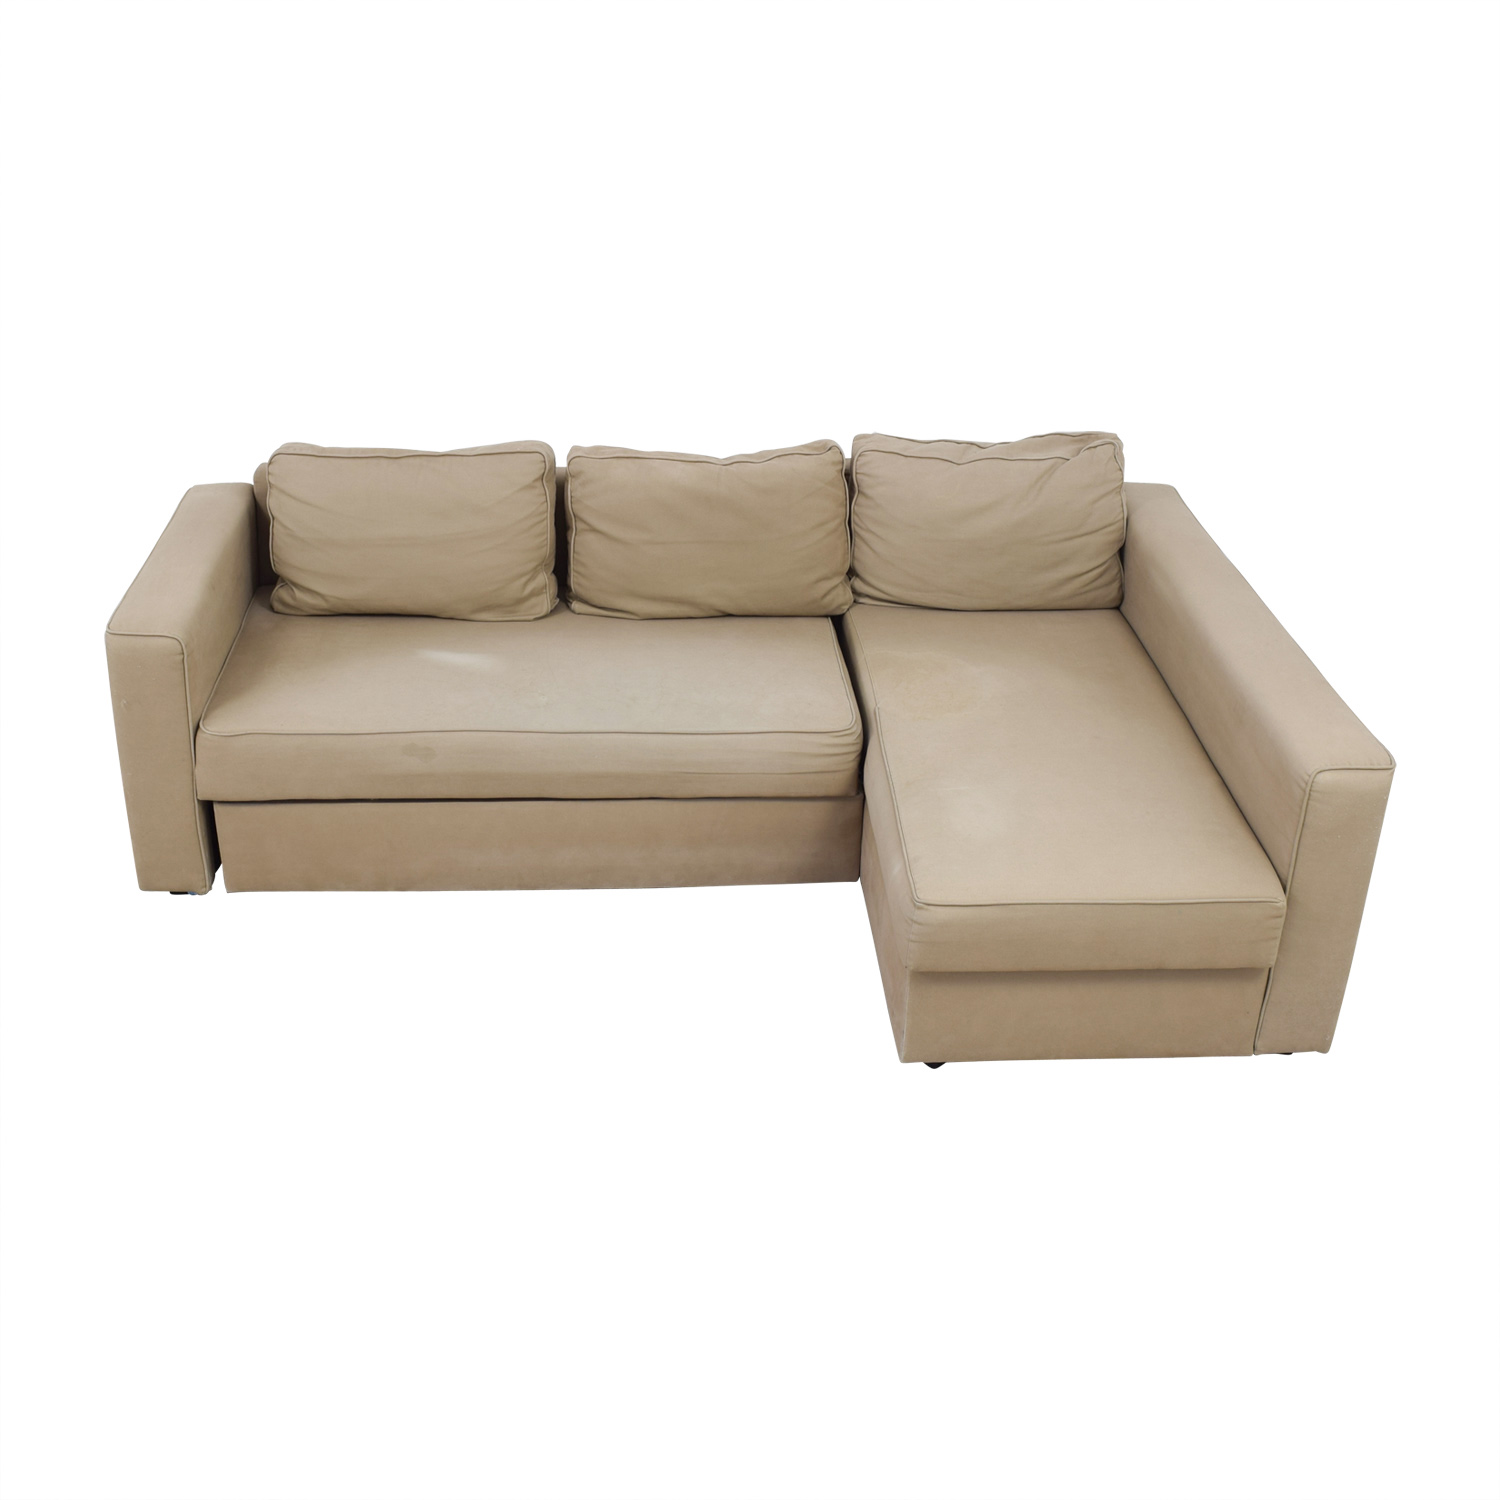 62 ikea ikea manstad sectional sofa bed with on Ikea Sofa Bed With Storage id=45268